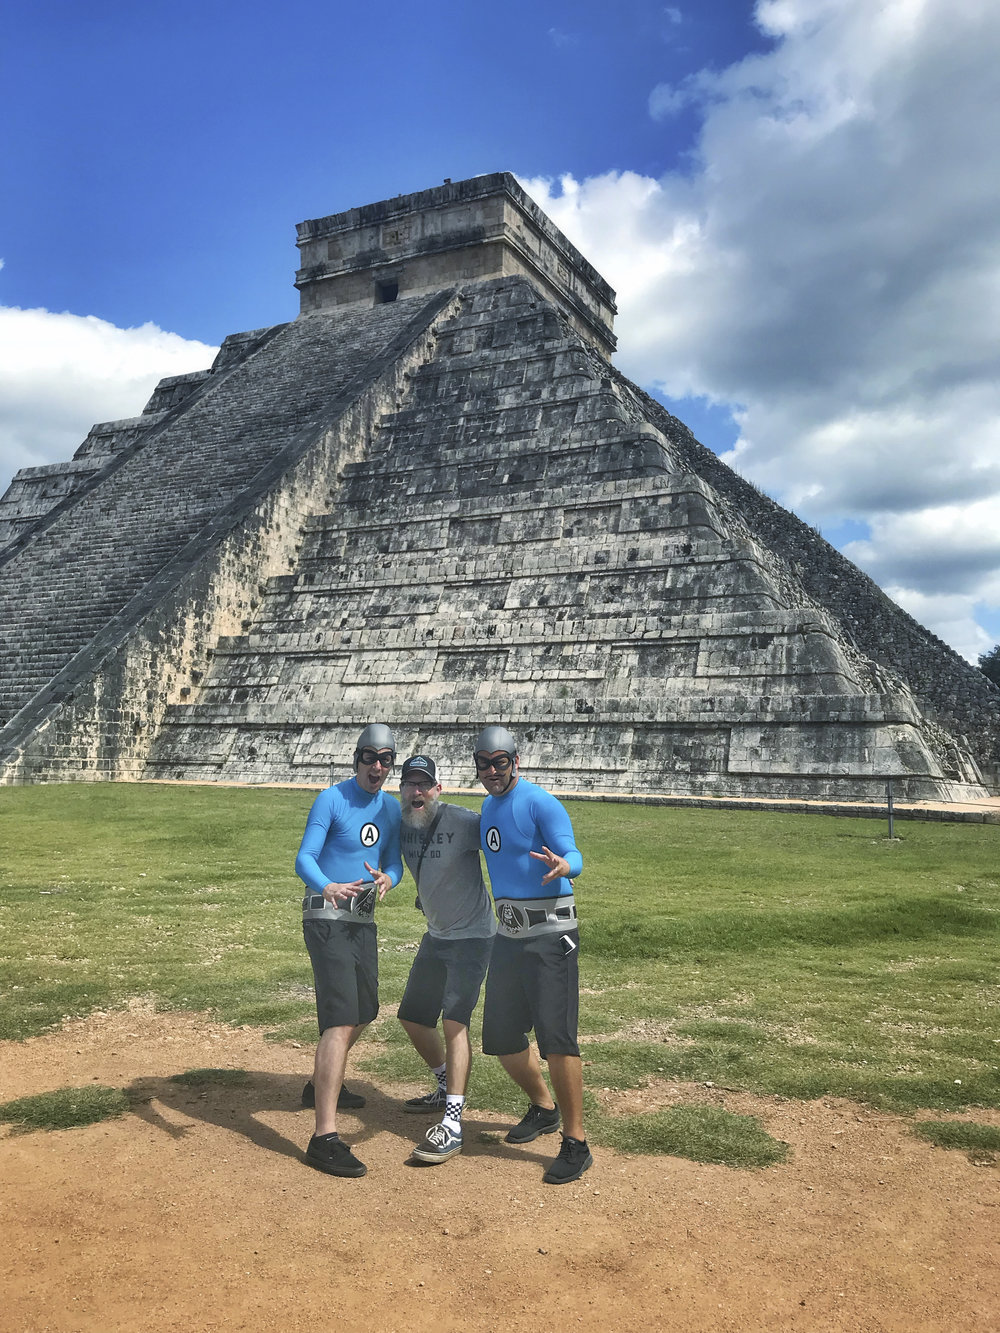 Bill was pretty geeked to run into the Aquabats at Chichen Itza!